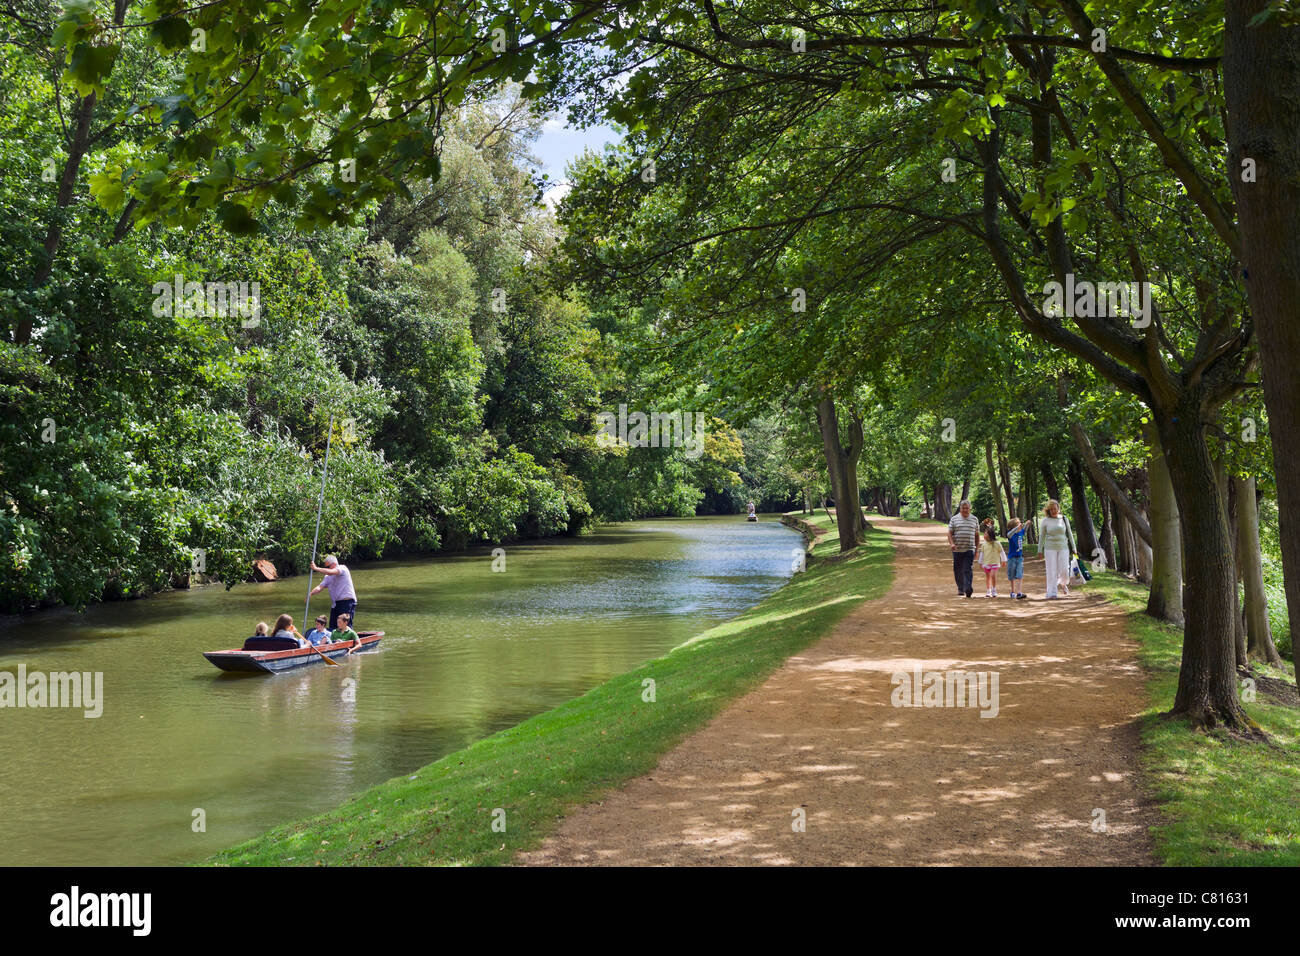 Punting on the River Cherwell and walking along its banks near Christ Church Meadow, Oxford, Oxfordshire, England, - Stock Image